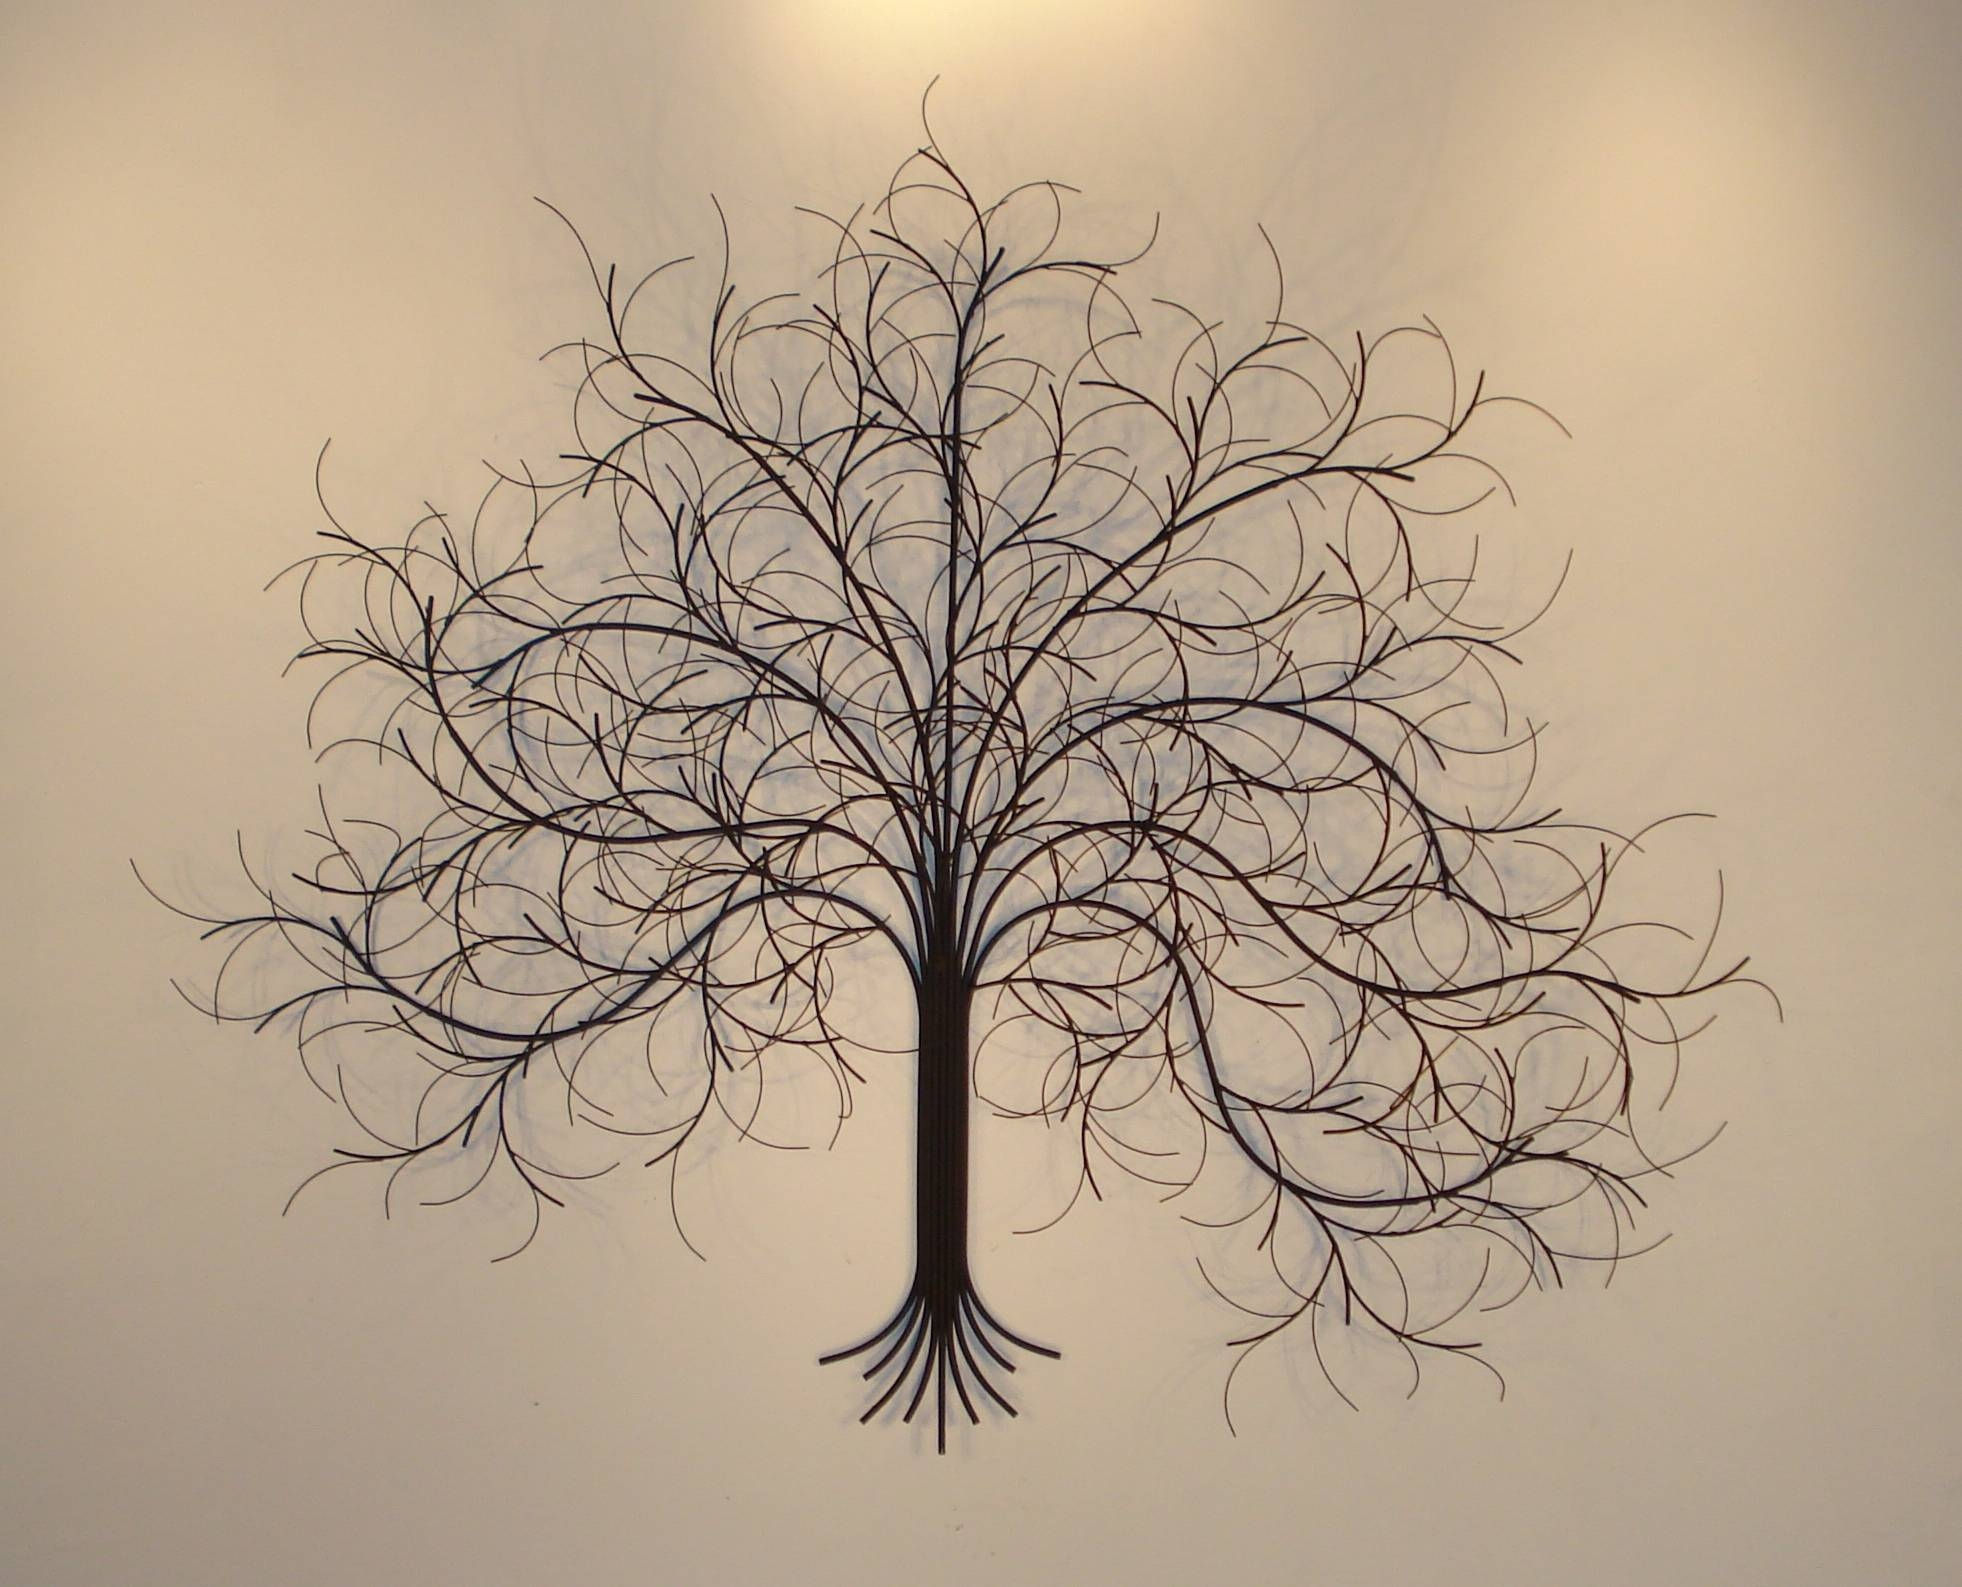 March Tree Metal Wall Art – Metal Sculpture And Wall Decor For Latest Black Metal Wall Art (View 2 of 20)